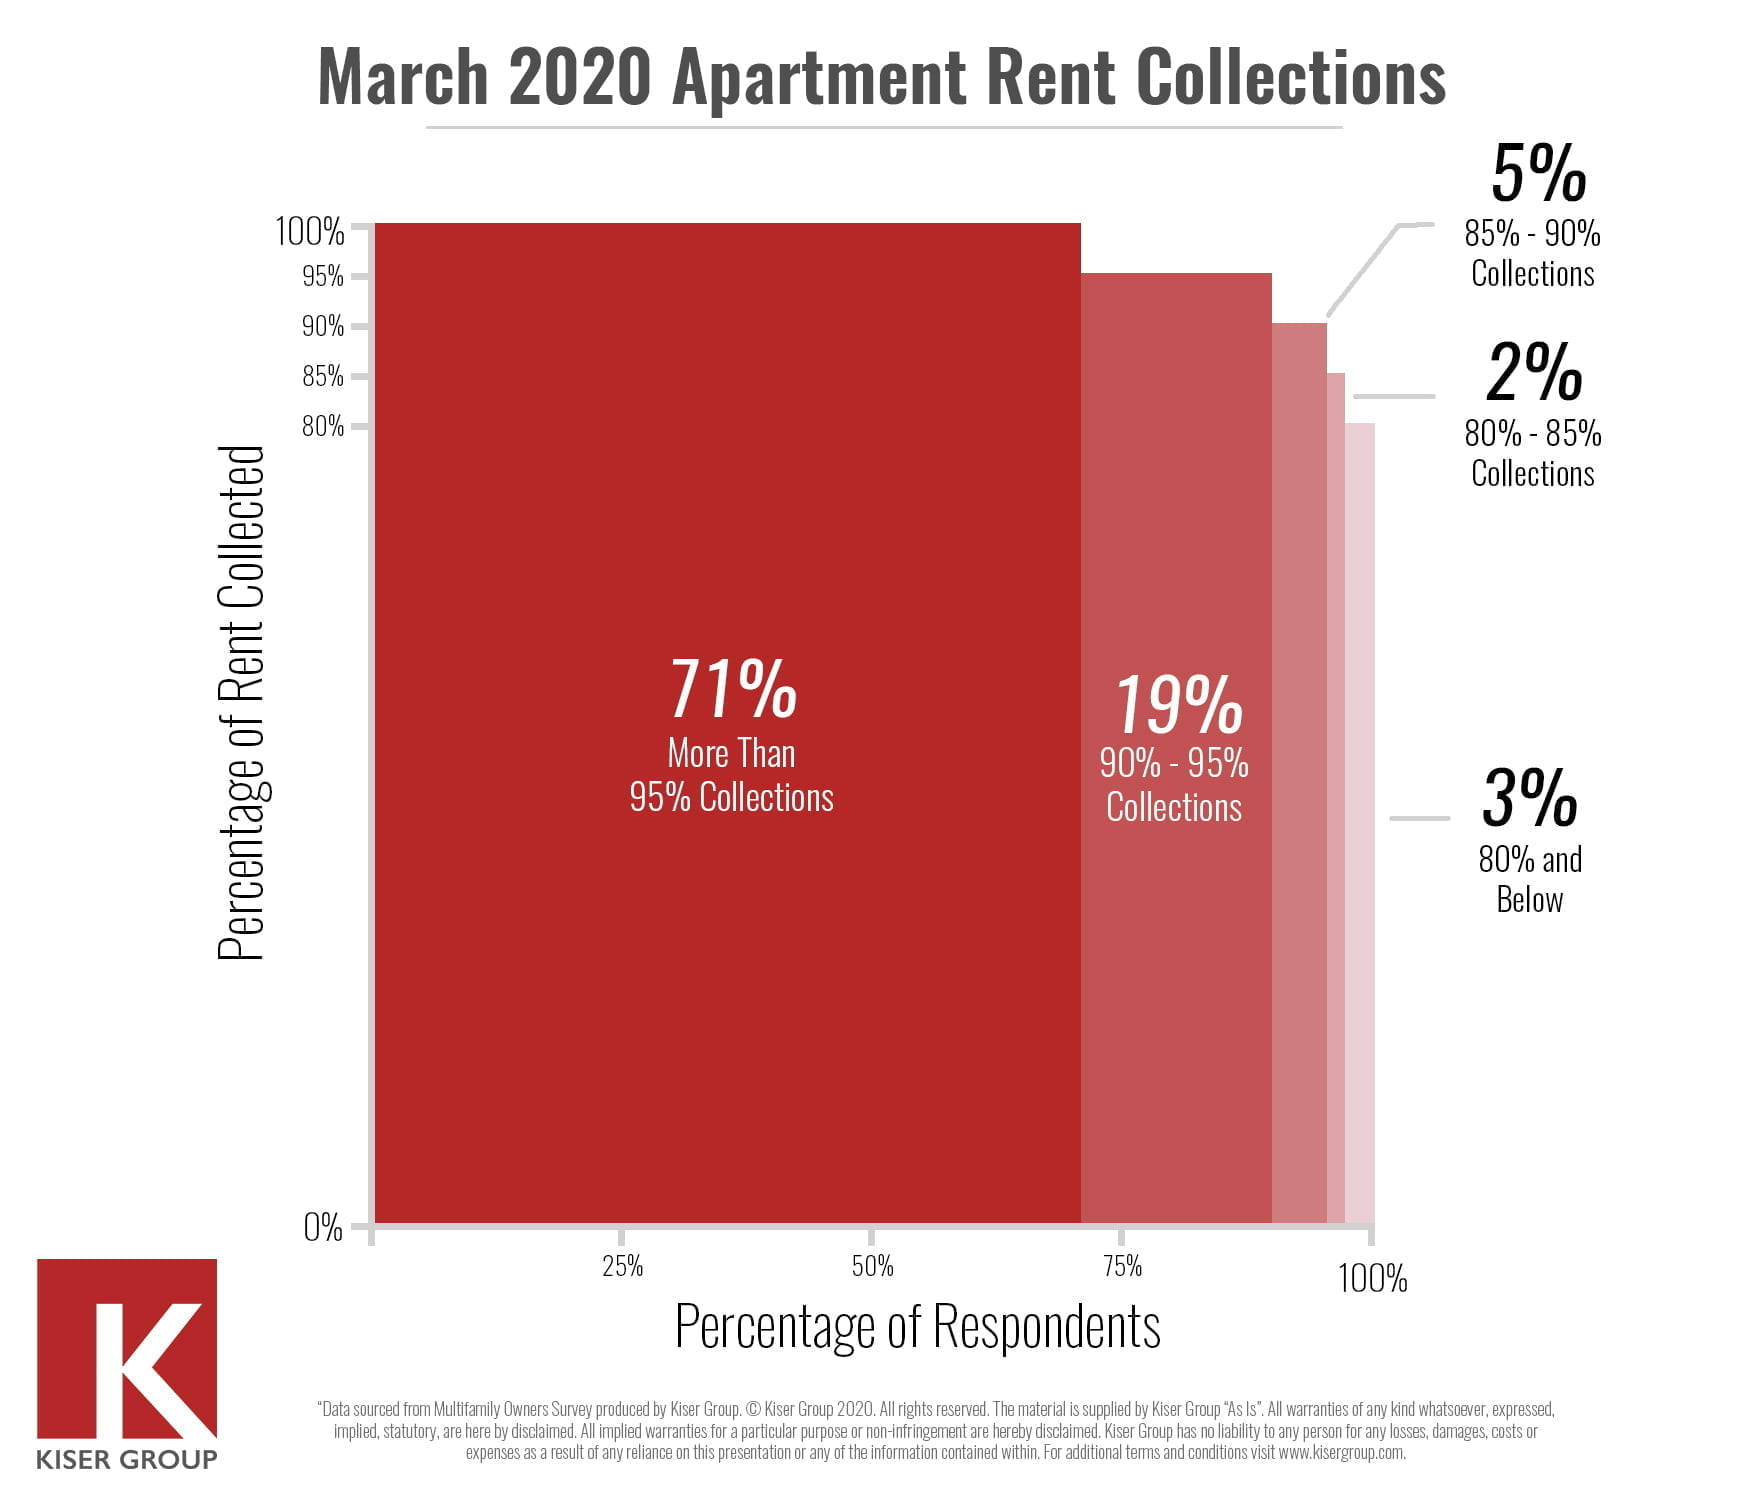 March Apartment Rent Collection